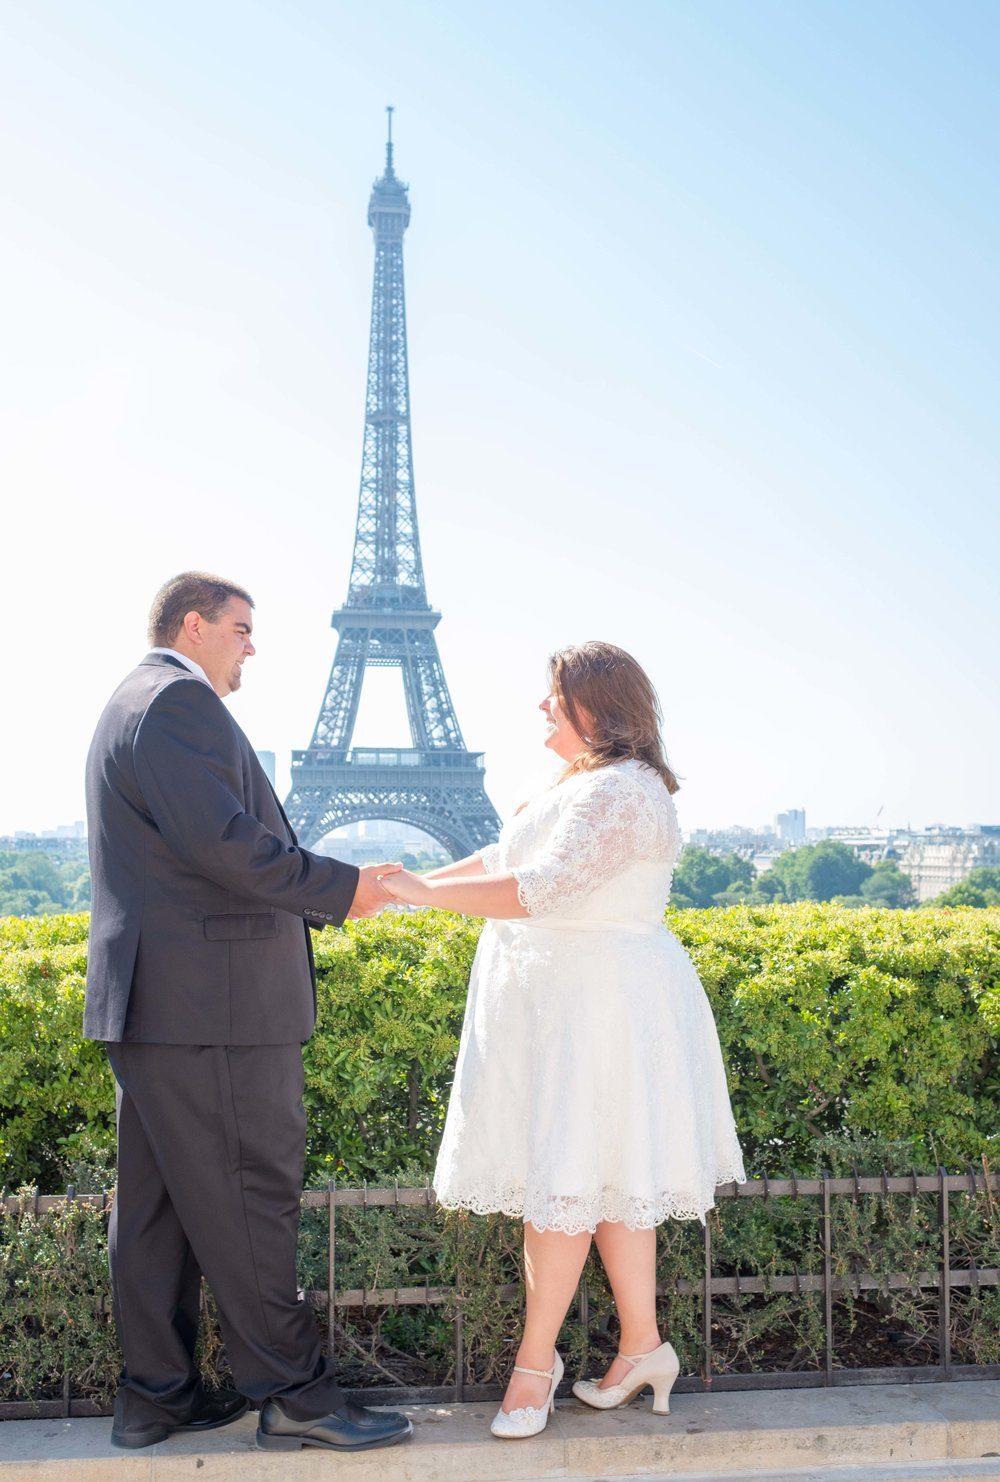 Newlywed couple holding hands with the Eiffel Tower in the background